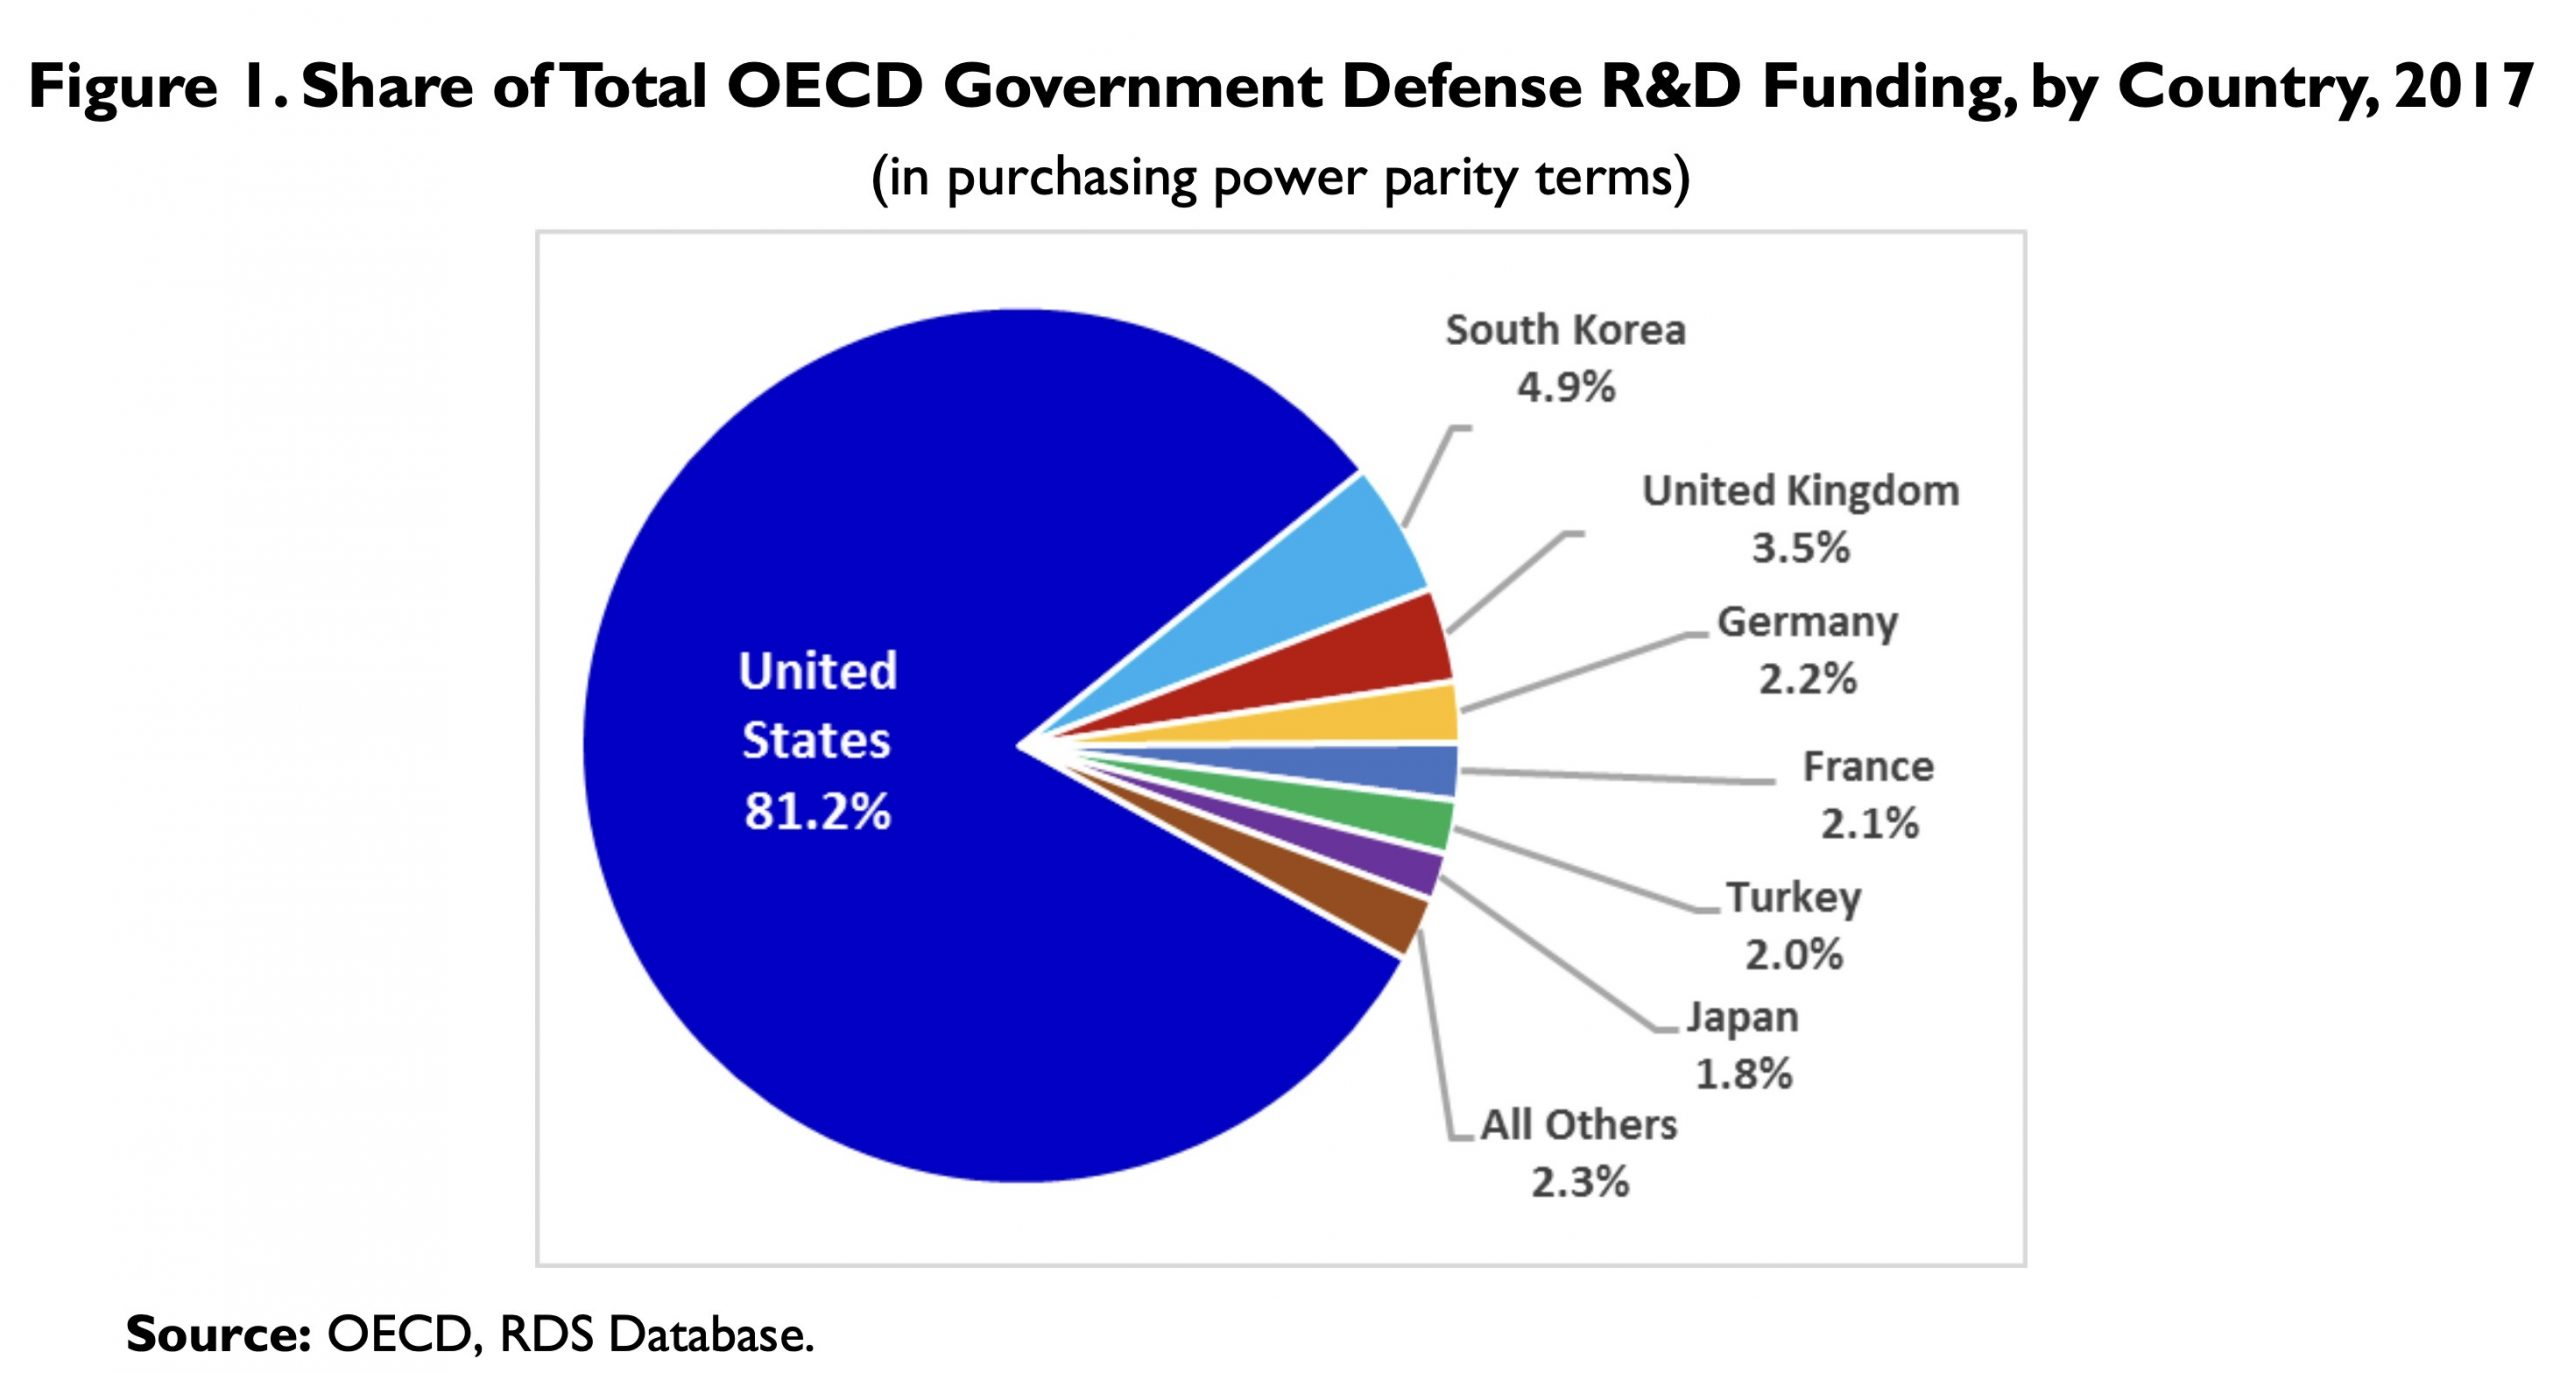 Share of Total OECD Government Defense R&D Funding, by Country